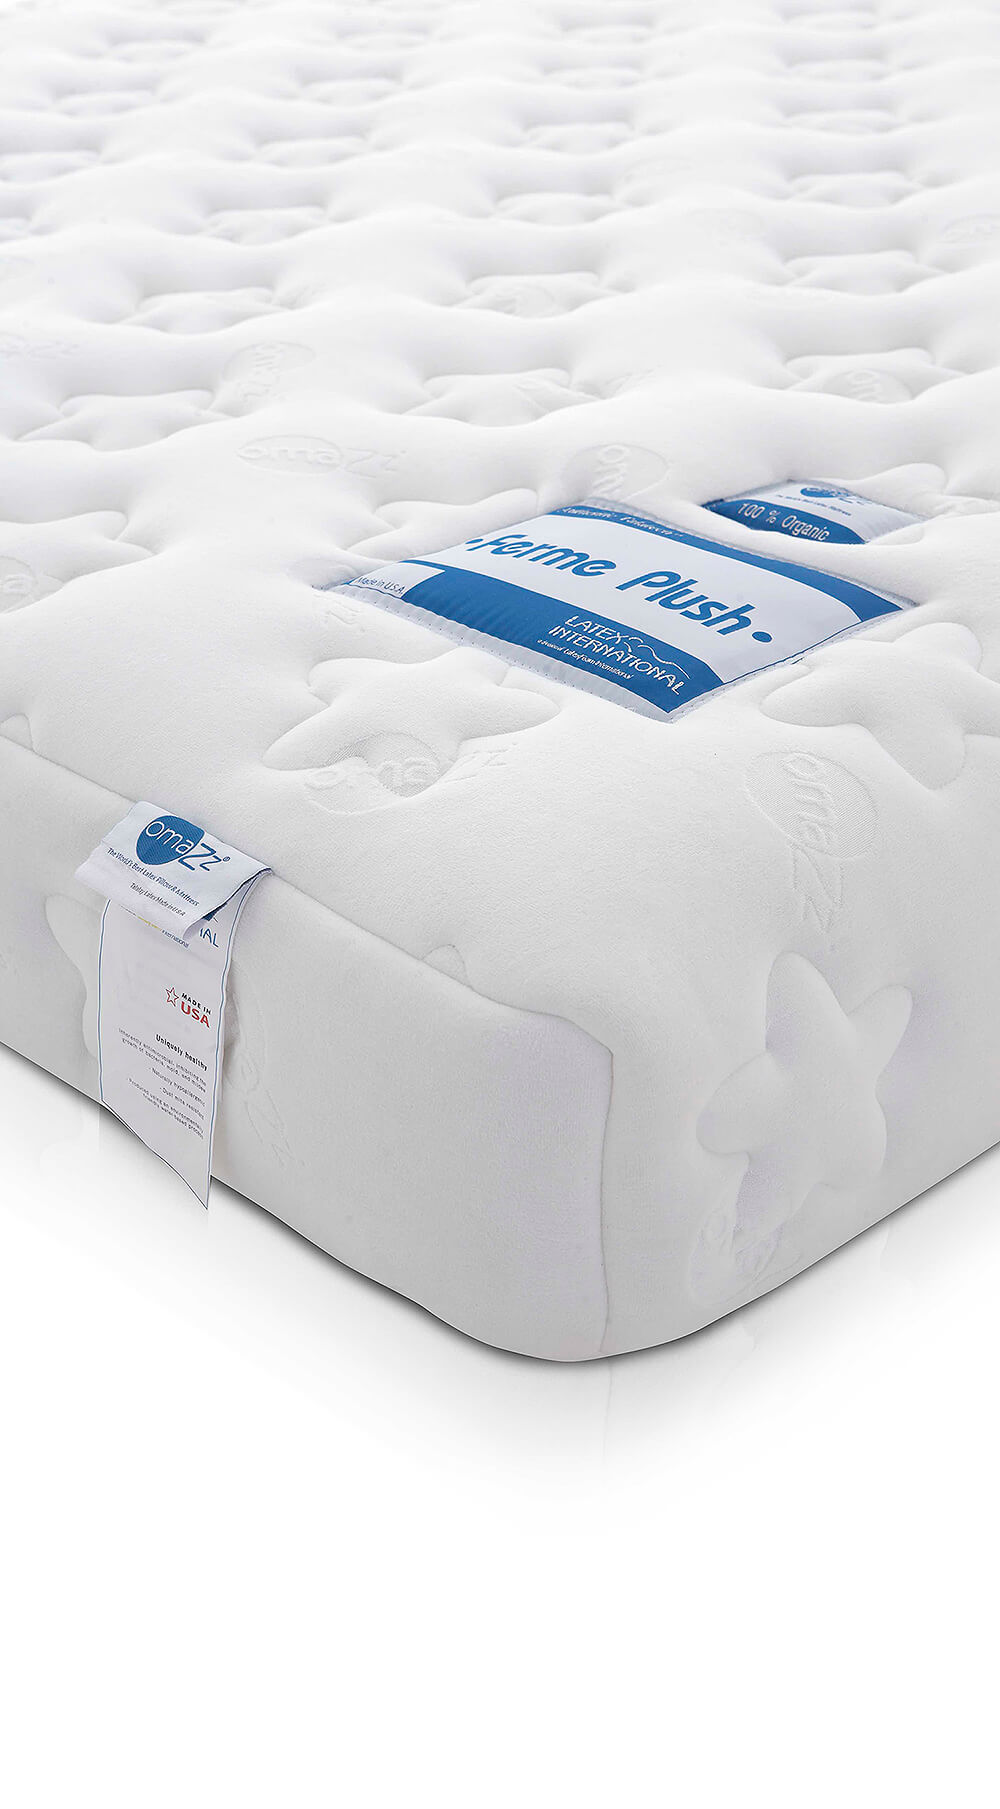 omazz-mattress-ferme-plush-o-4